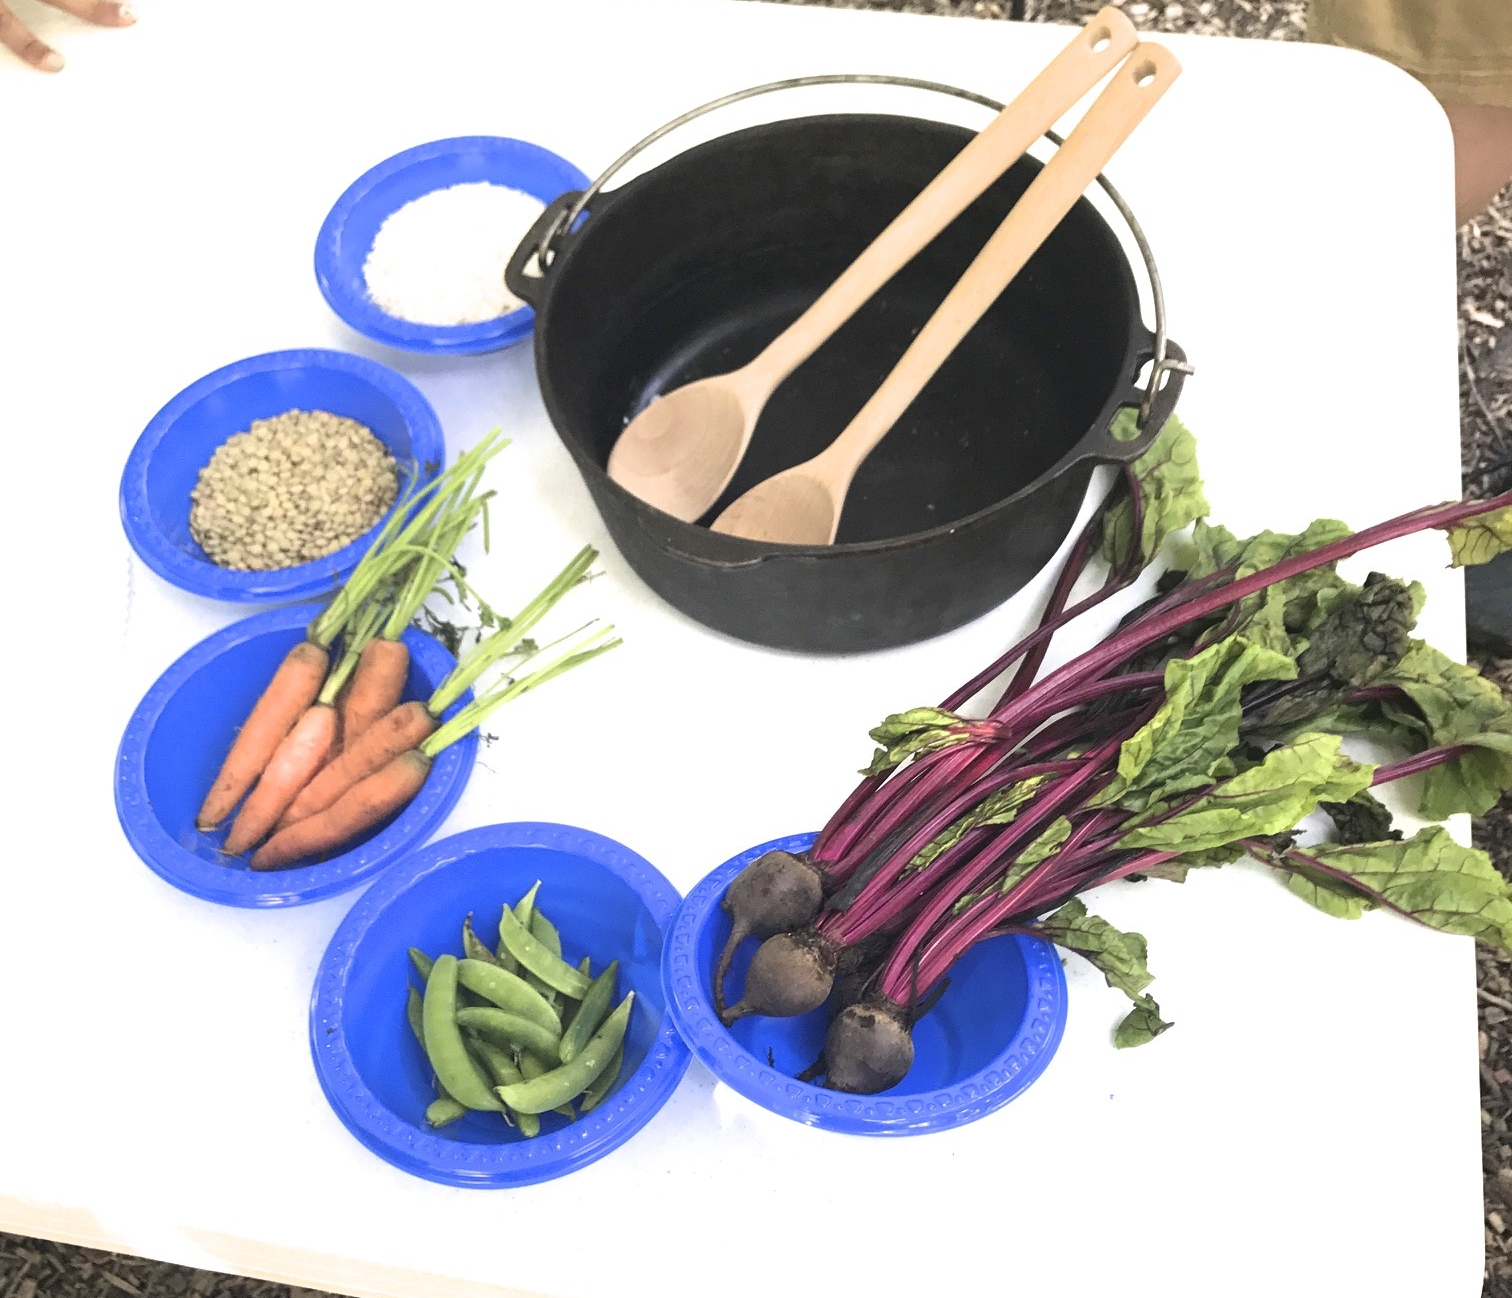 Typical Weekly Food Allotment for Refugees